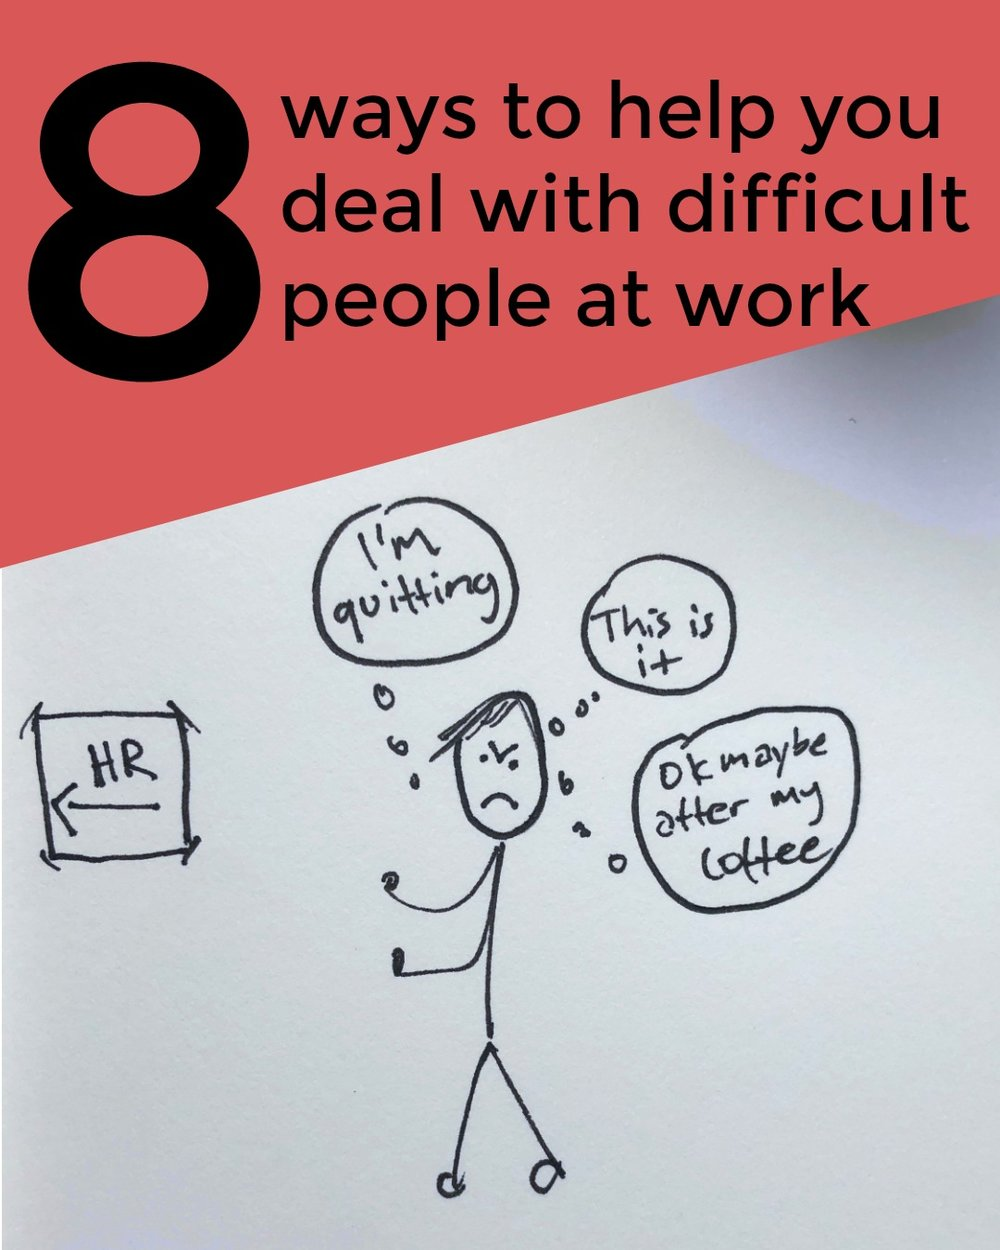 Personal Stories Quotes To Help You Deal With Difficult People At